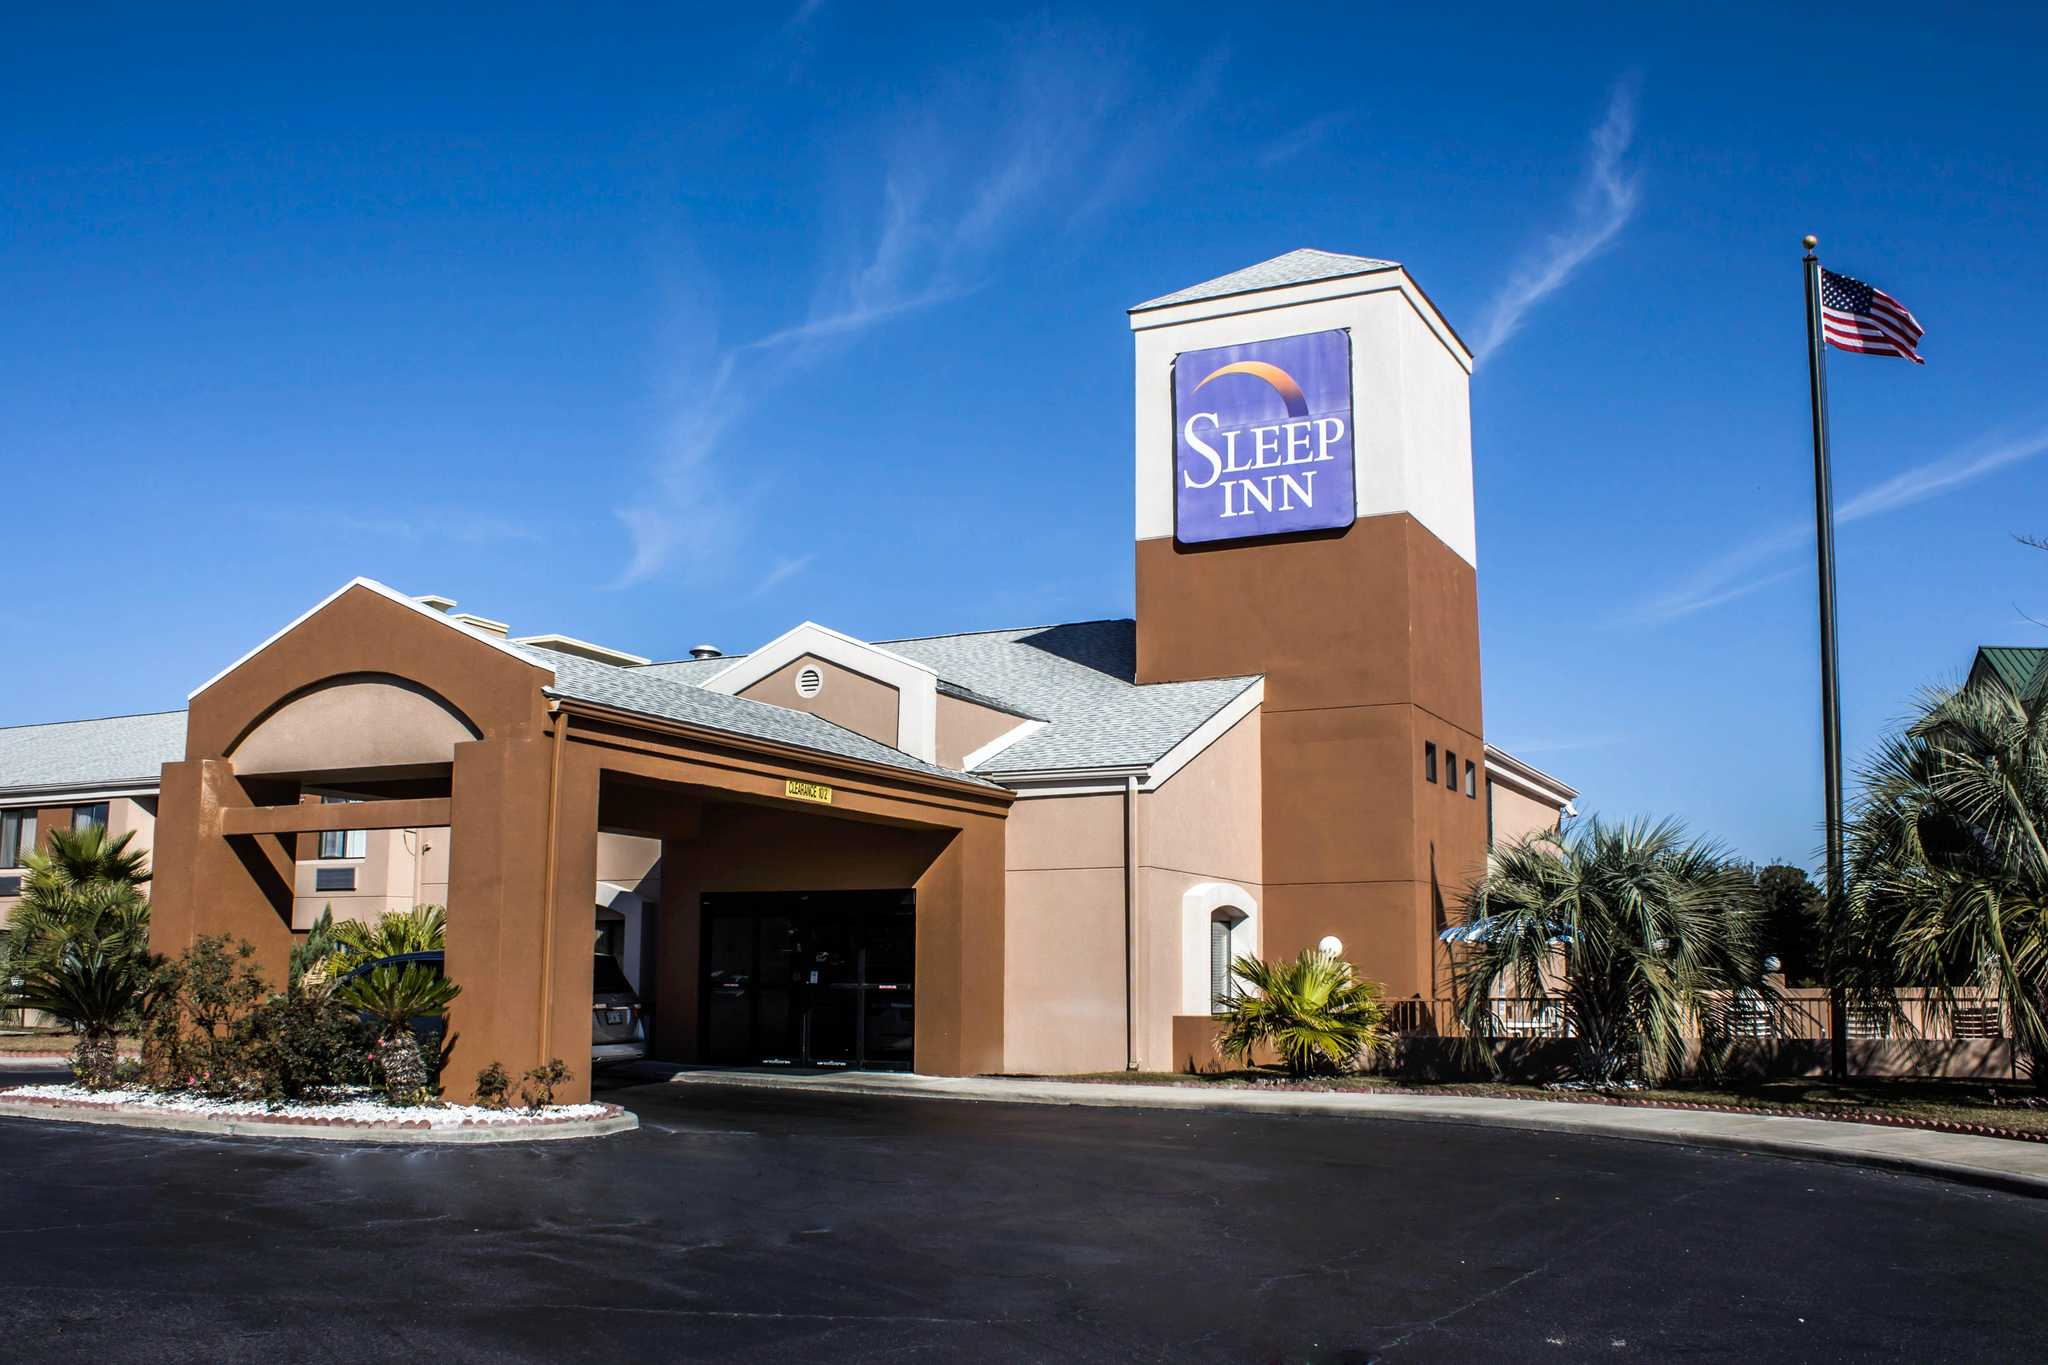 Sleep Inn Gateway image 1